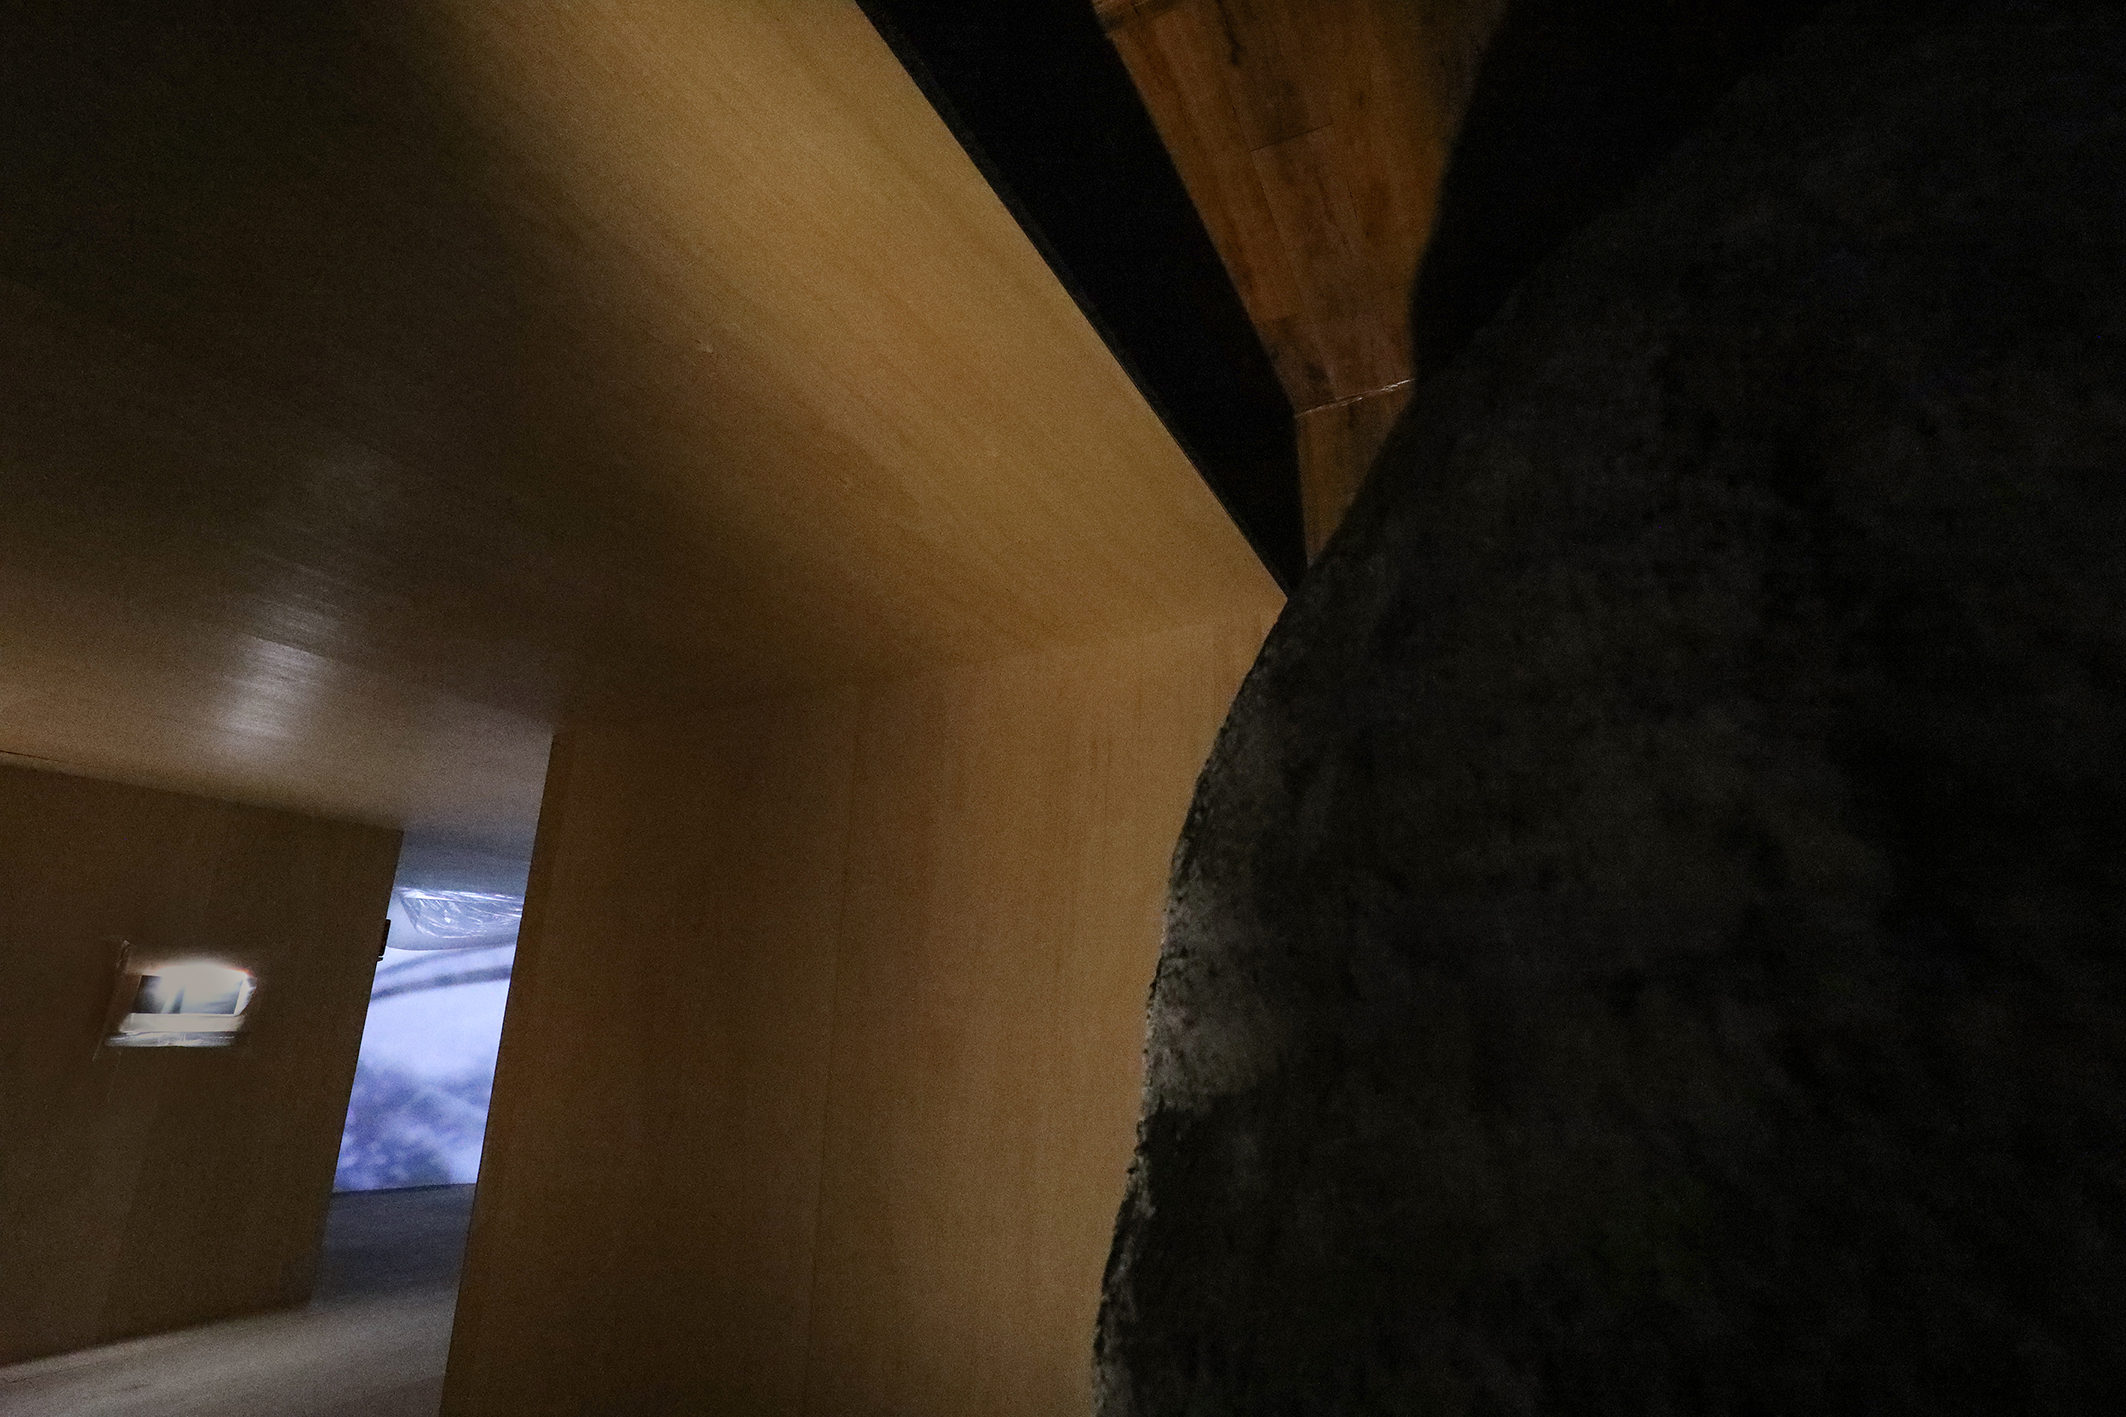 Infinite, and Gallery's Floor, Site specific (sound, sculpture, PVC wallpapers), Dimensions variable, 2021